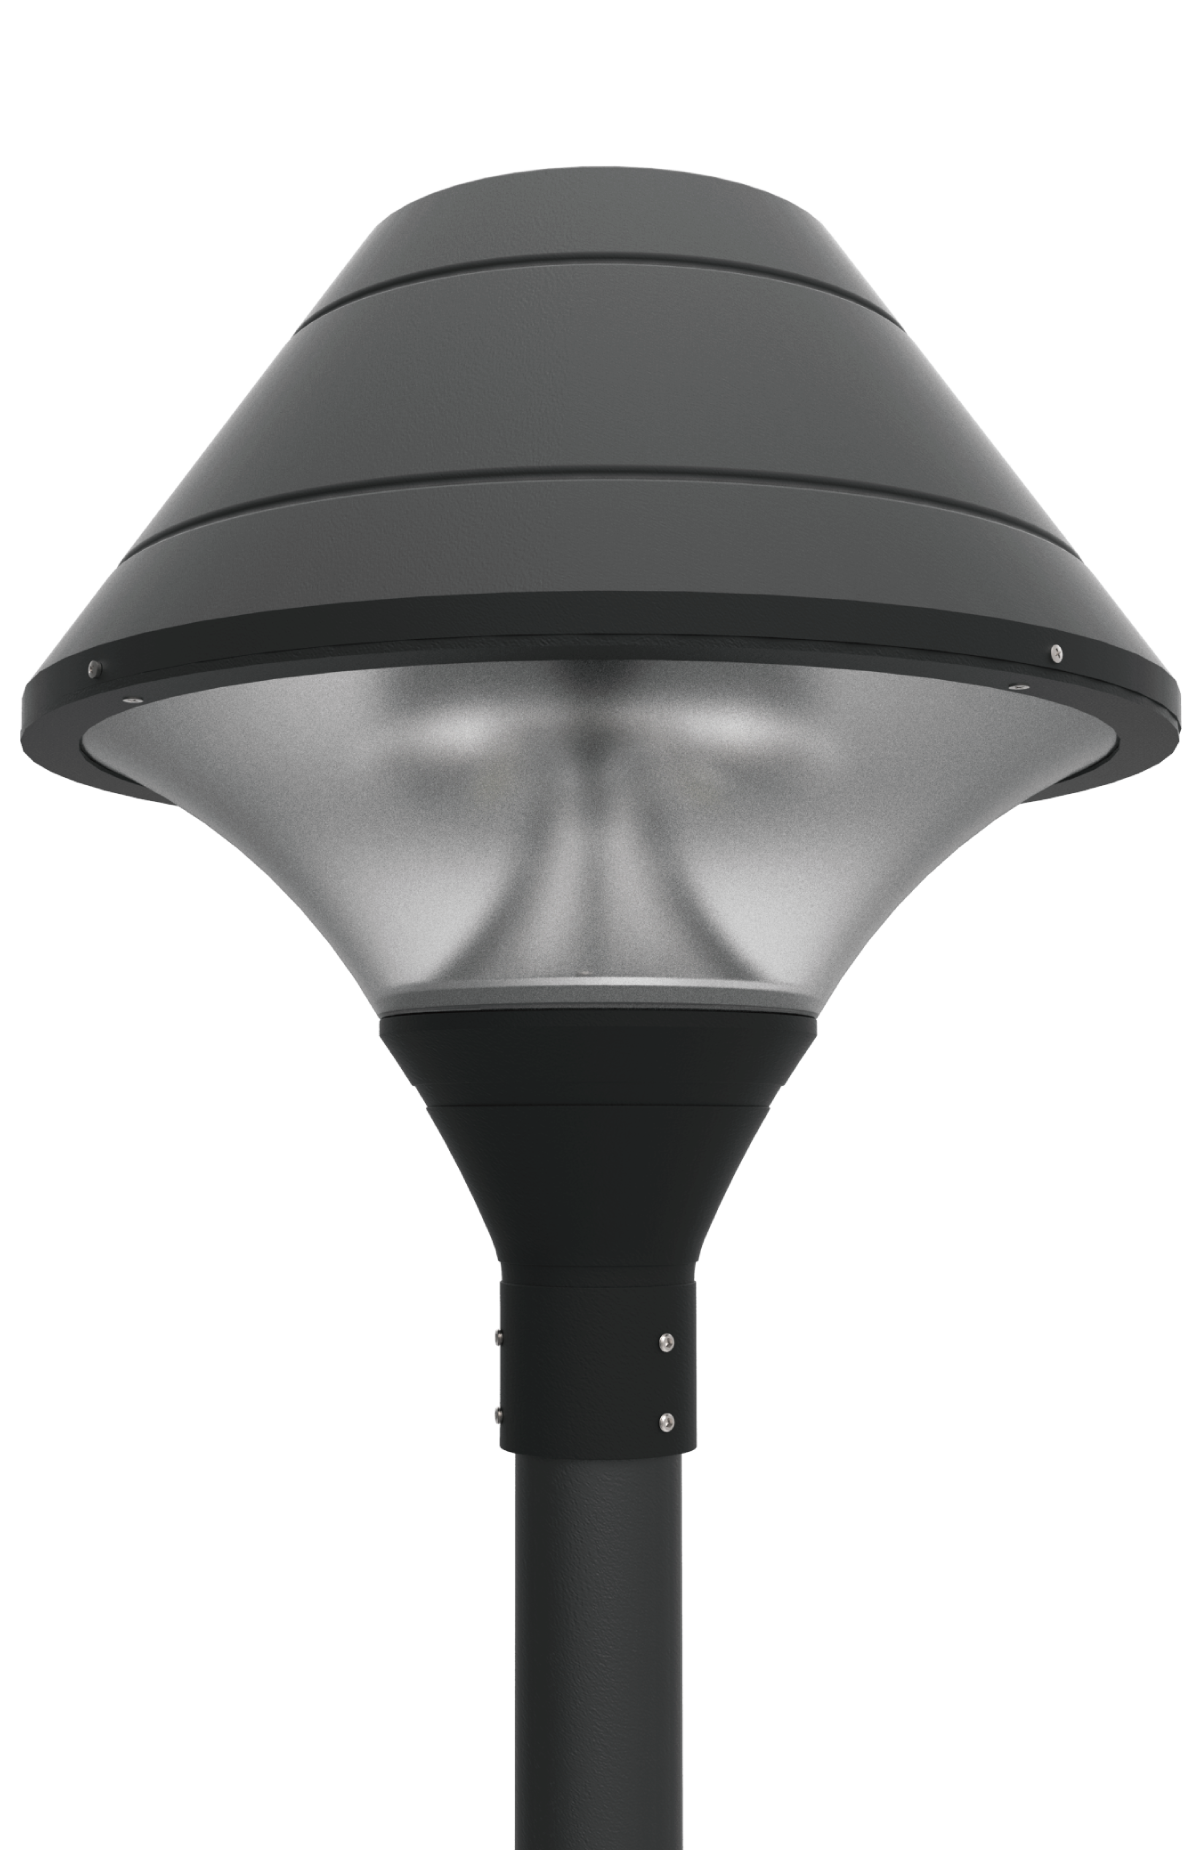 Led Pt 640 Series Led Post Top Light Fixtures Americana Post Top Area Luminaire Duke Light